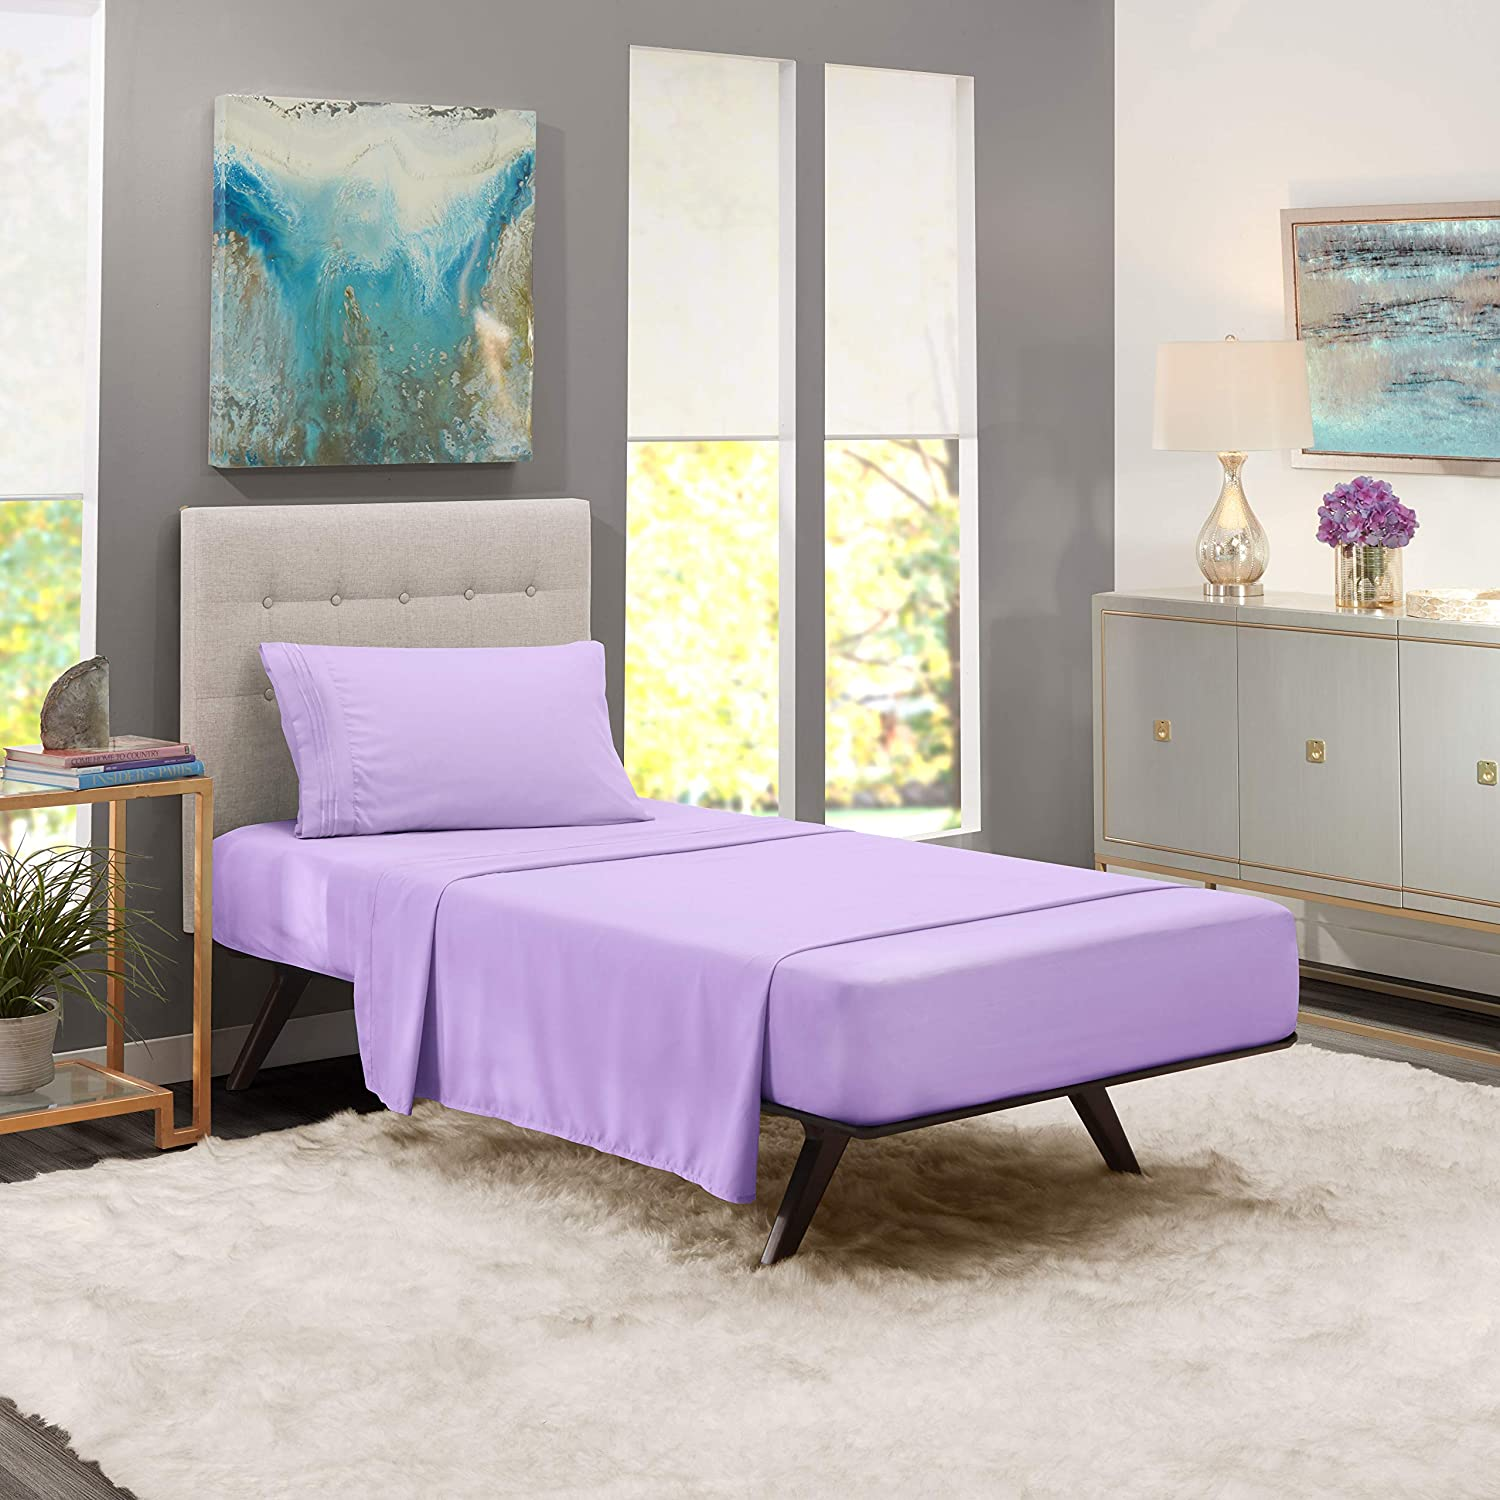 """Nestl Bedding Soft Sheet Set – 3 Piece Bed Sheet Set, 3-Line Design Pillowcase – Easy Care, Wrinkle Free – 10""""–16"""" Inches Deep Pocket Fitted Sheets – Free Warranty Included – Twin (Single), Lavender"""